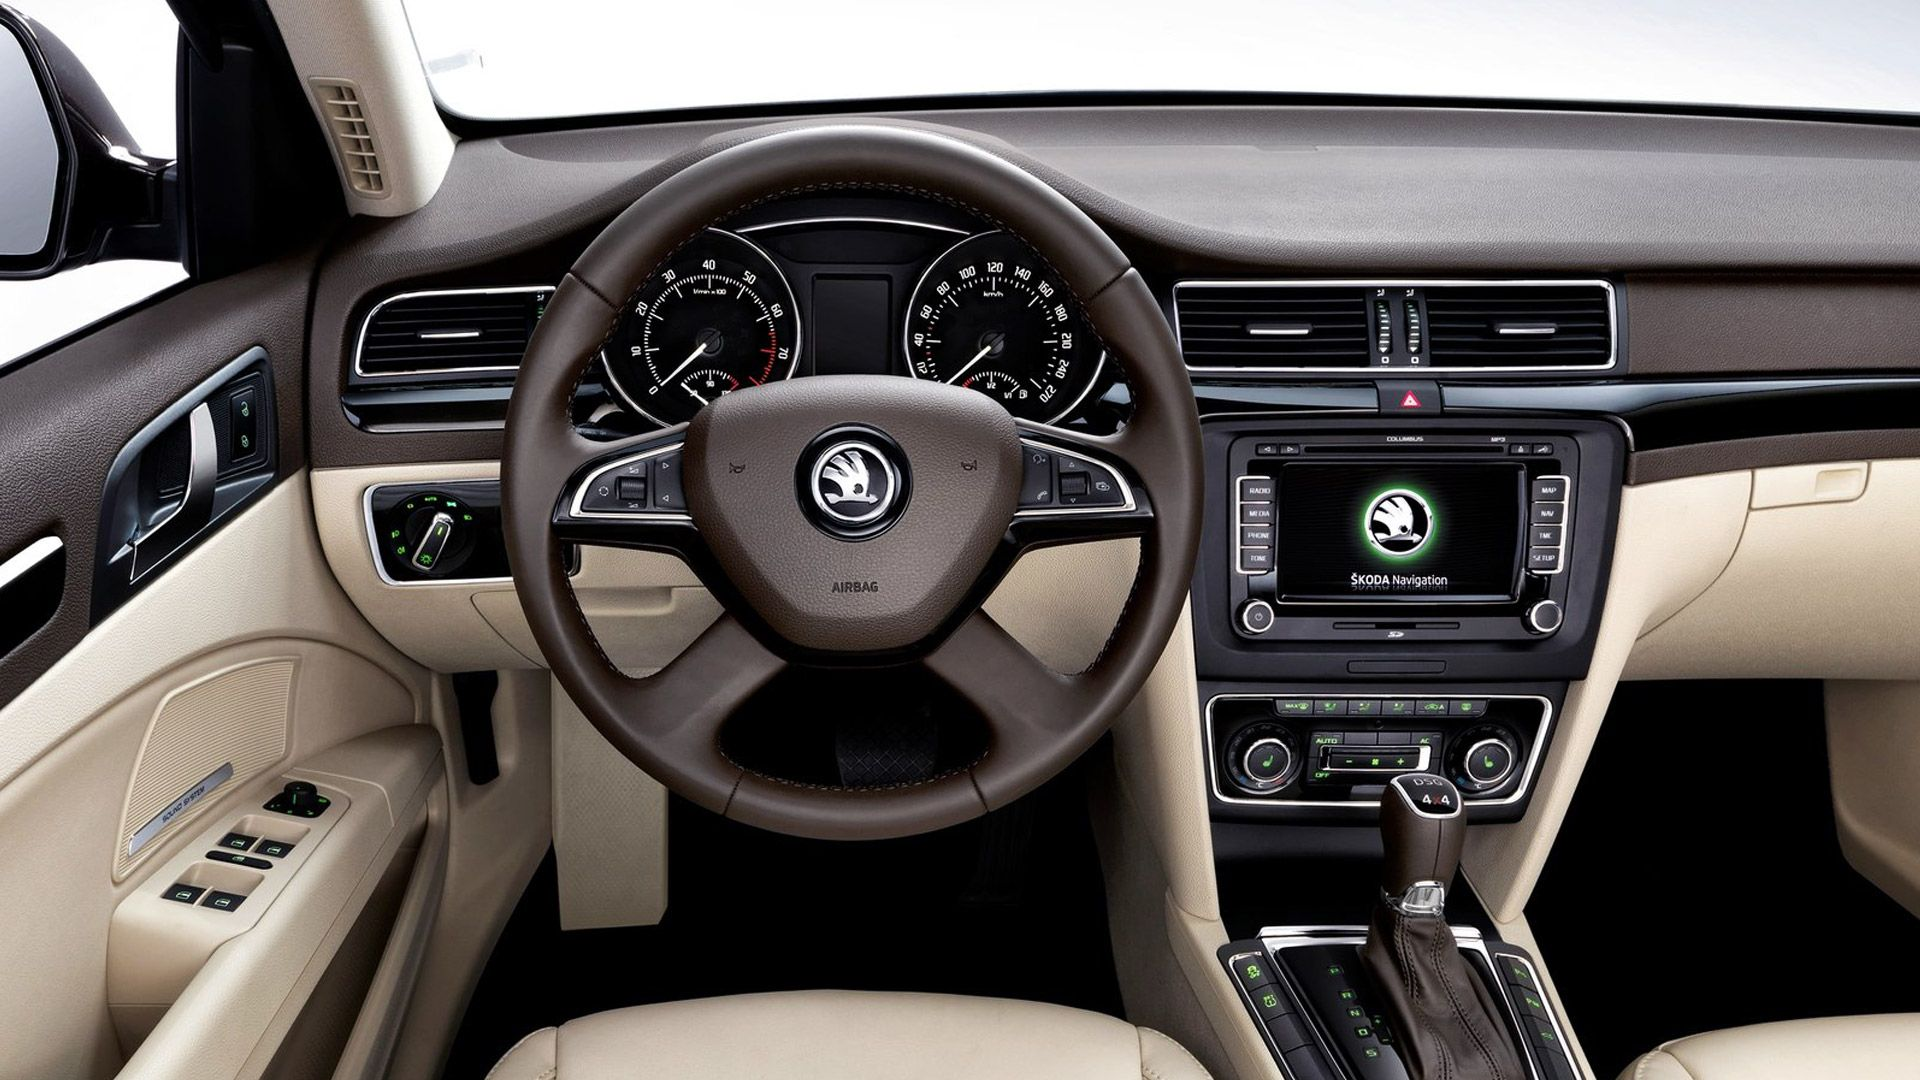 Skoda Superb Combi Interior Skoda Superb